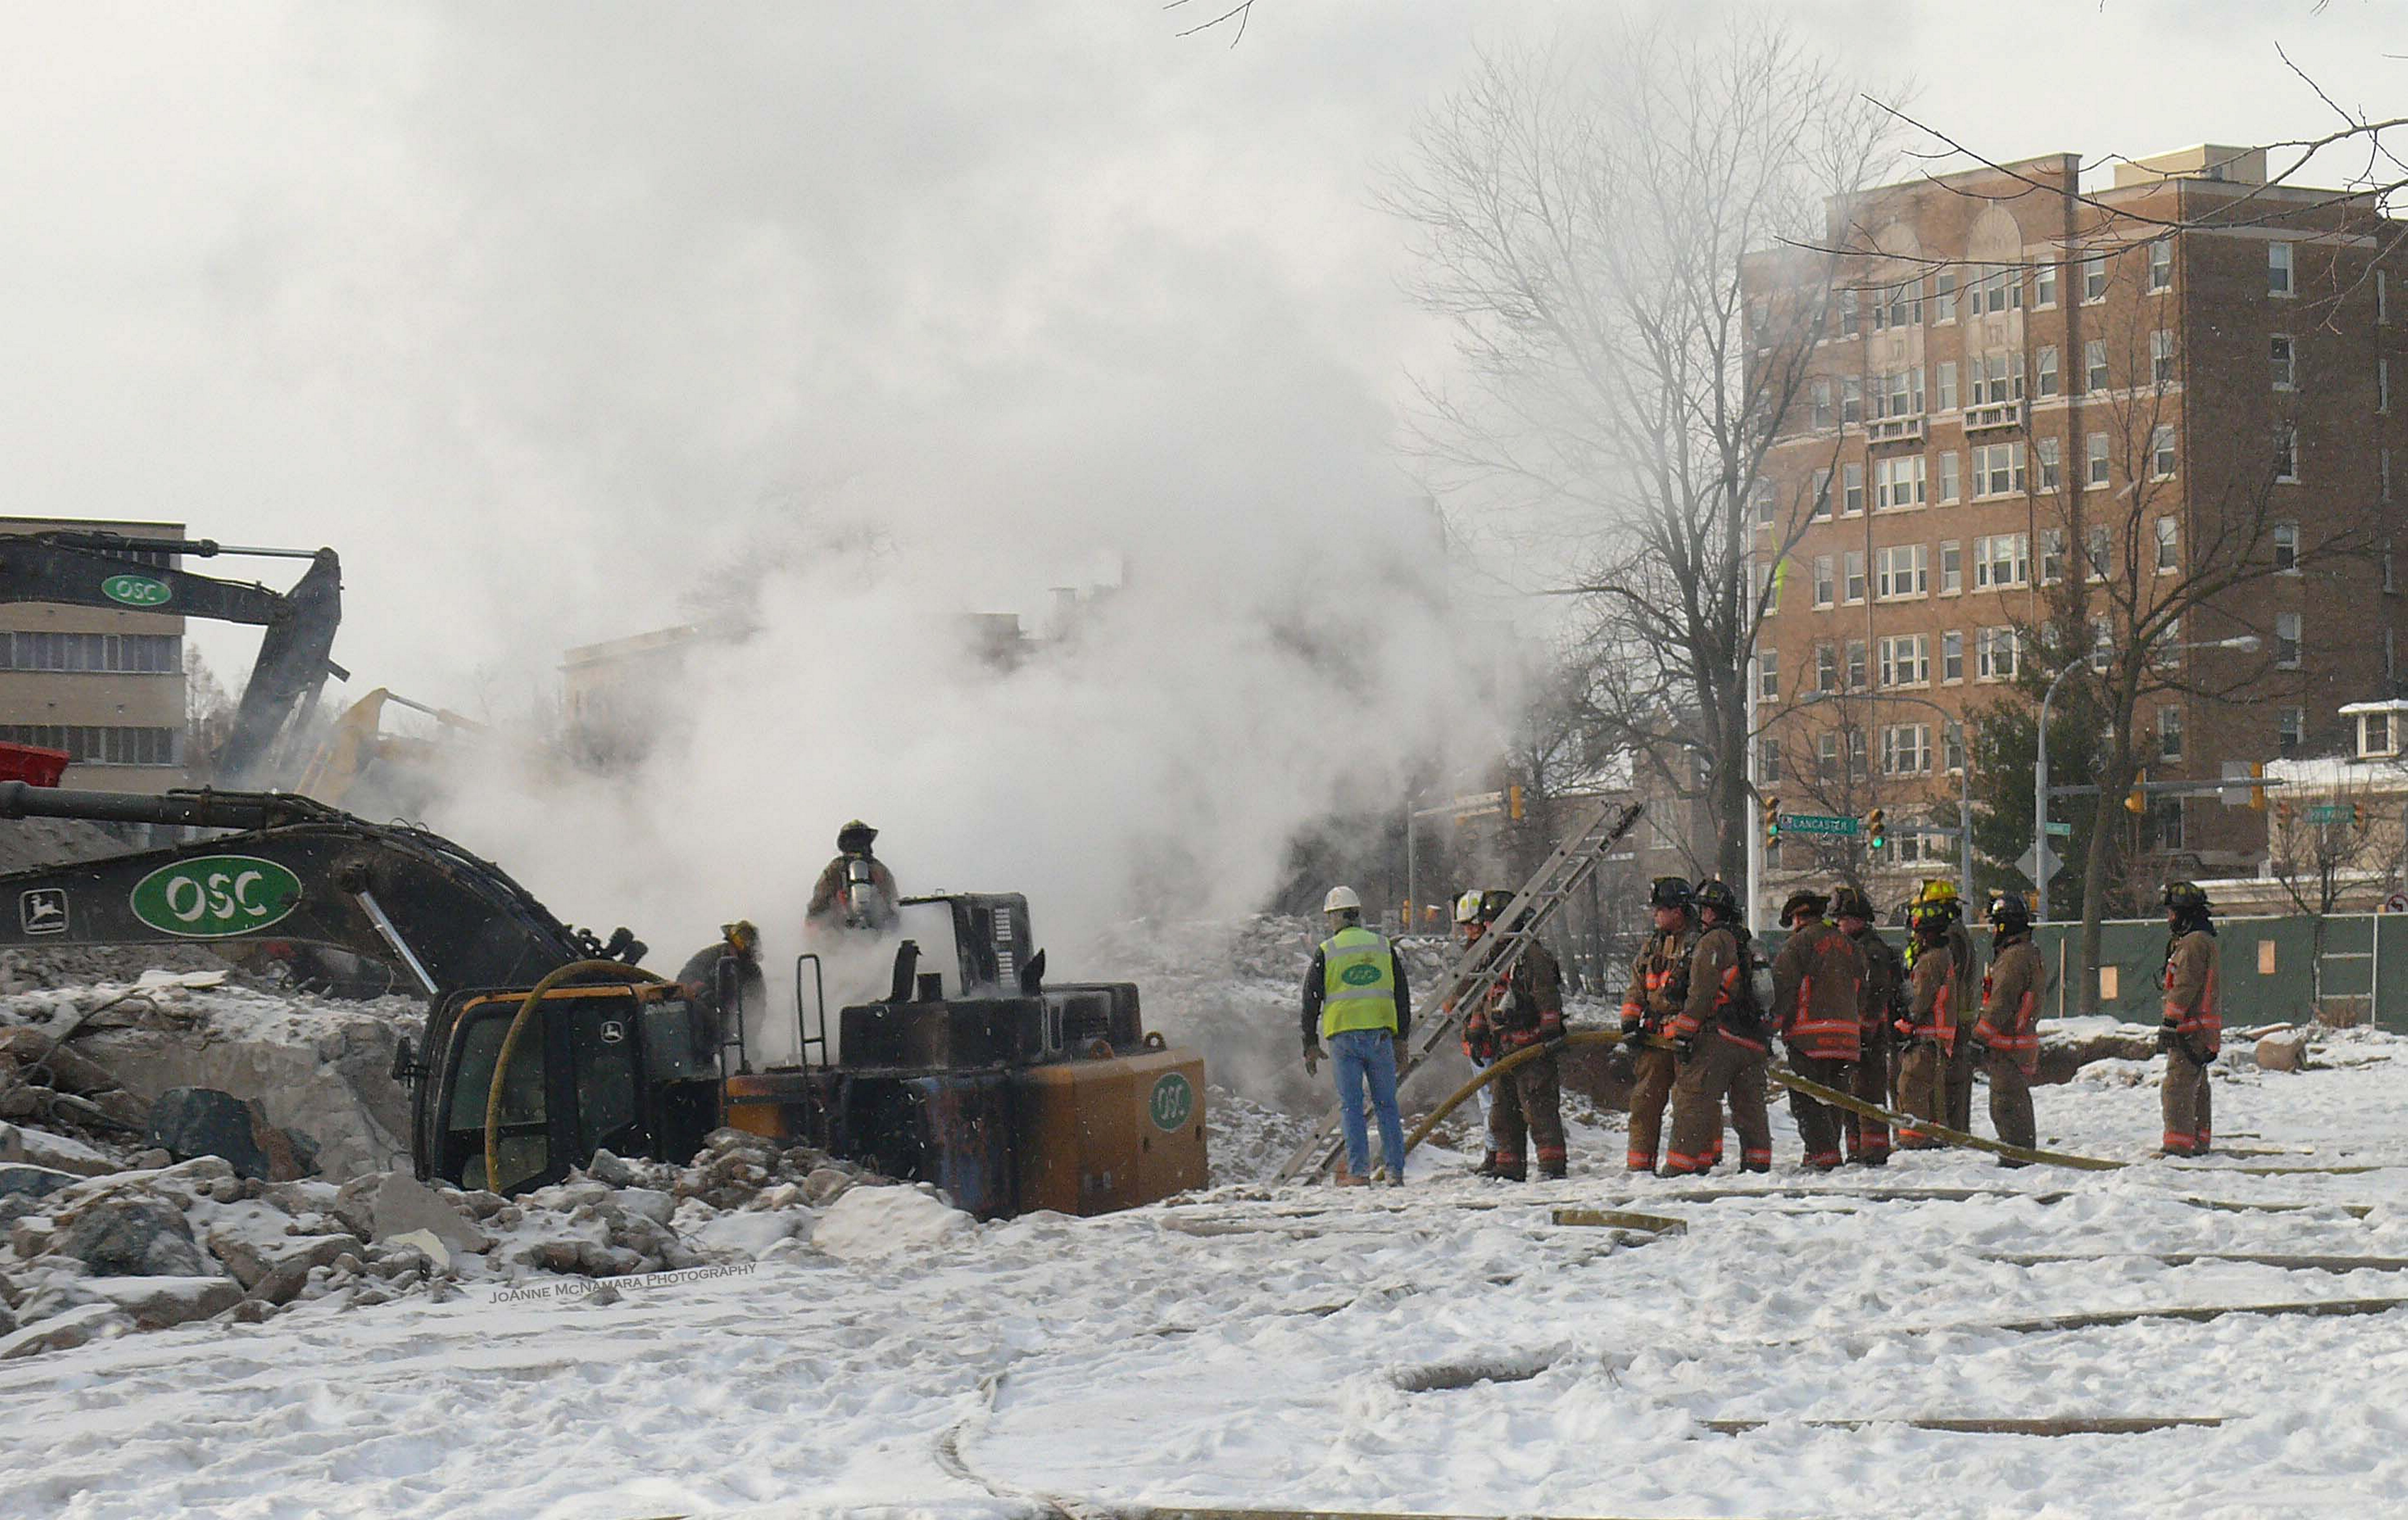 A fire in an excavator at the former Millard Fillmore Hospital site on Gates Circle was extinguished by Buffalo firefighters Saturday morning. (JoAnne McNamara/Special to the News)